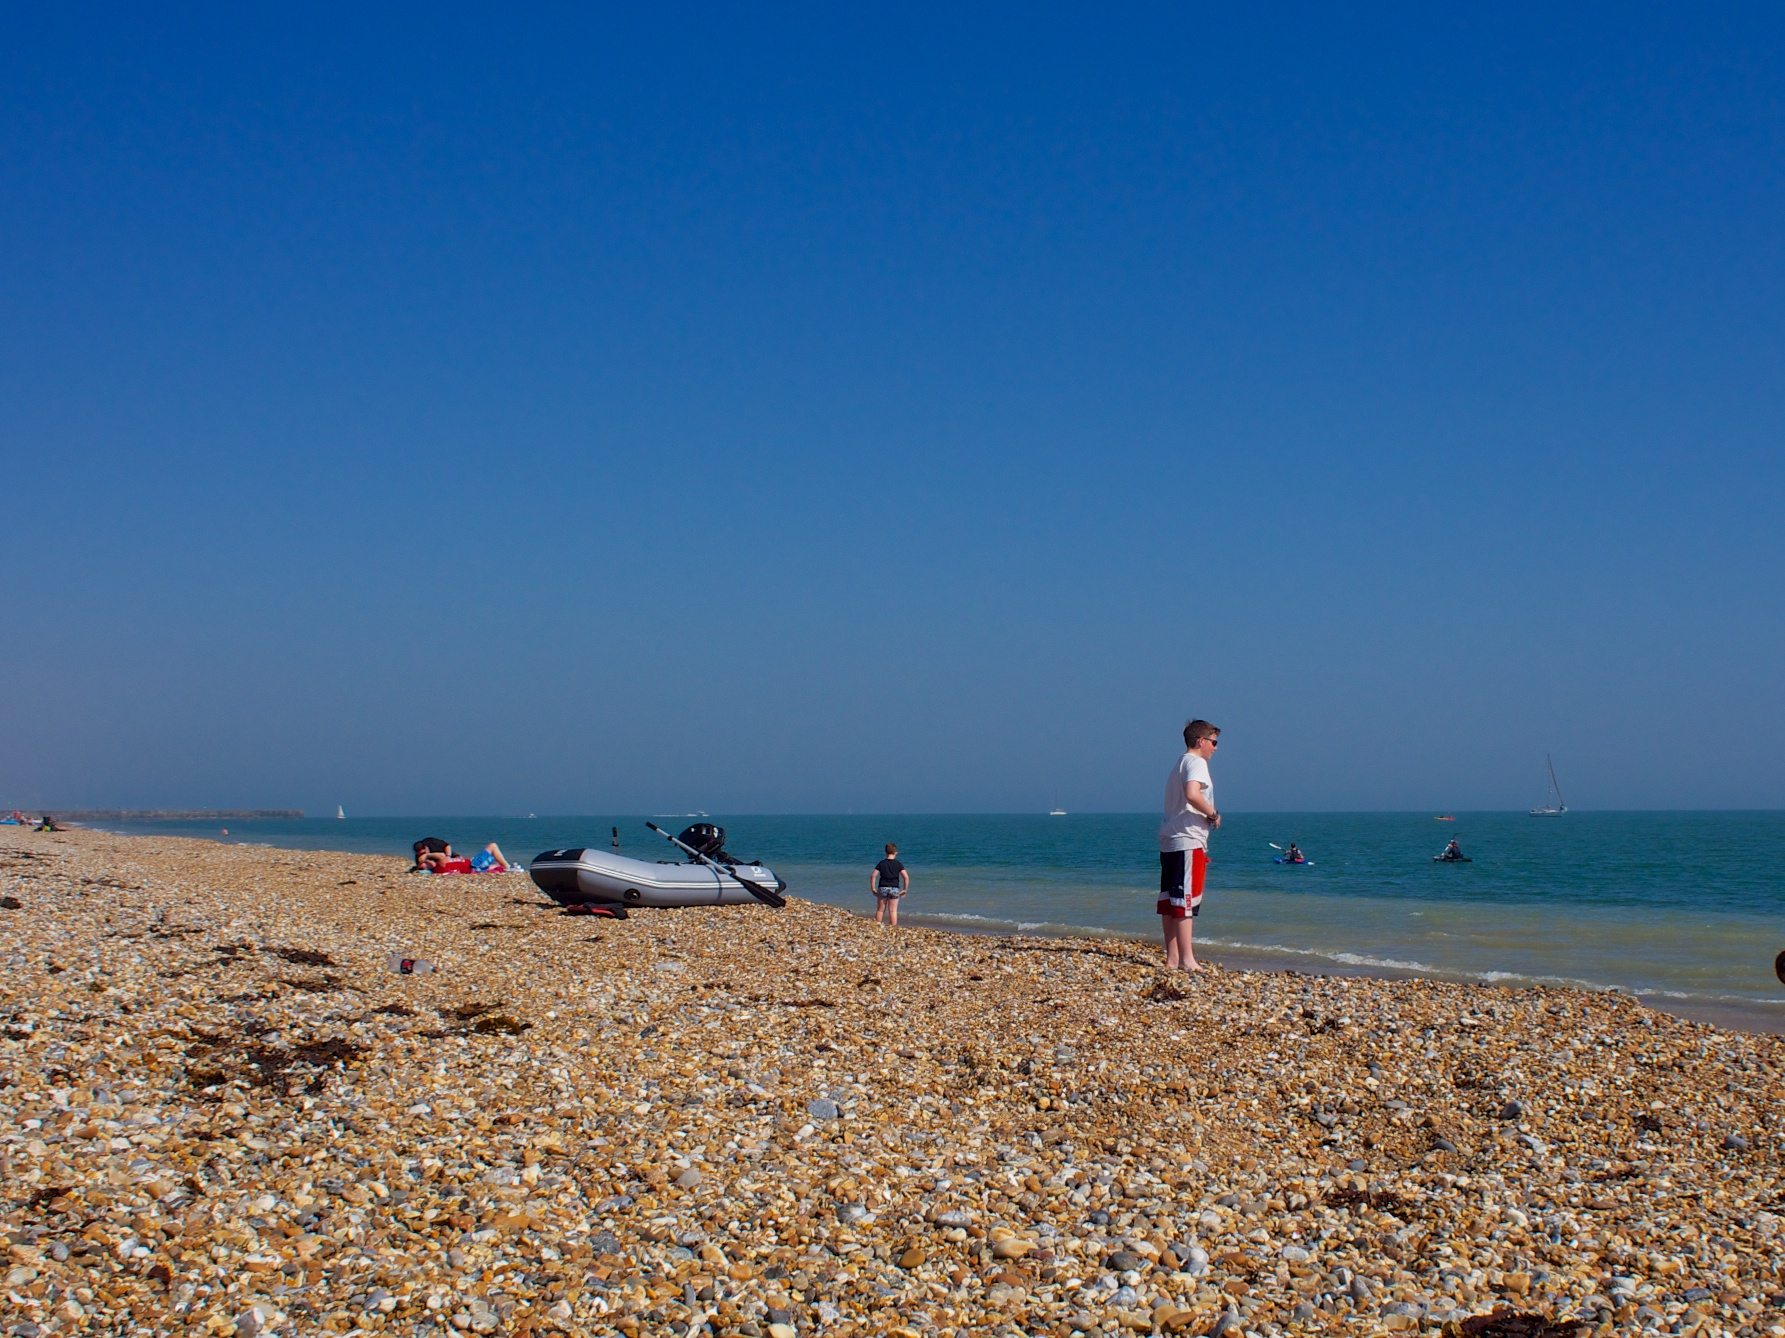 The beach comes to life in Shoreham by Sea